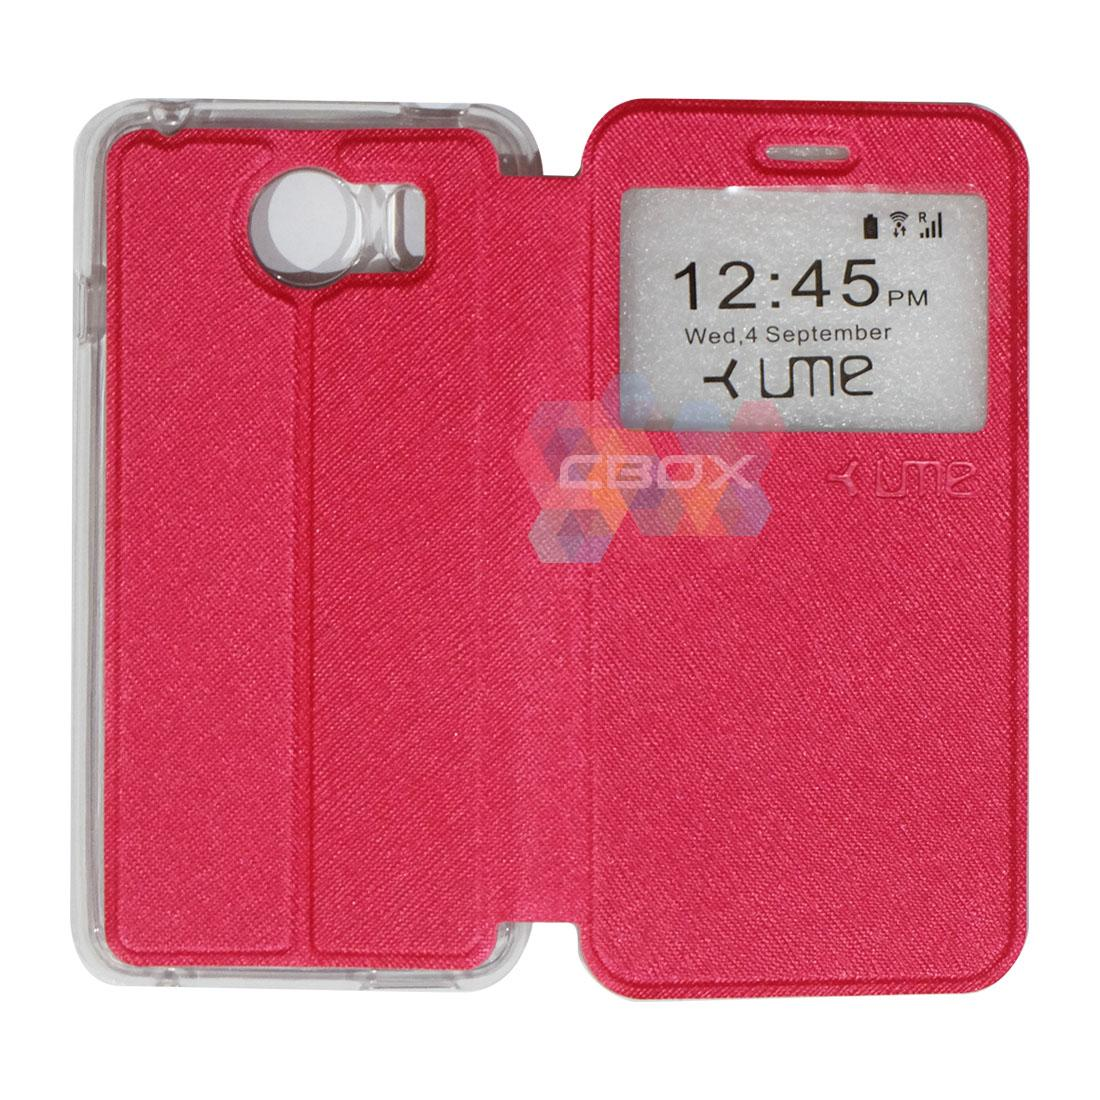 Ume Flipshell Leather Phone Himax M1 Sarung Case / Flipshell Ume Himax M1 / Flipcover Ume Himax M1 / Leather Case Ume Himax M1 / Sarung HP Himax M1 / Flipshell Himax M1 / Flipcover Himax M1 / Casing Himax M1 - Merah